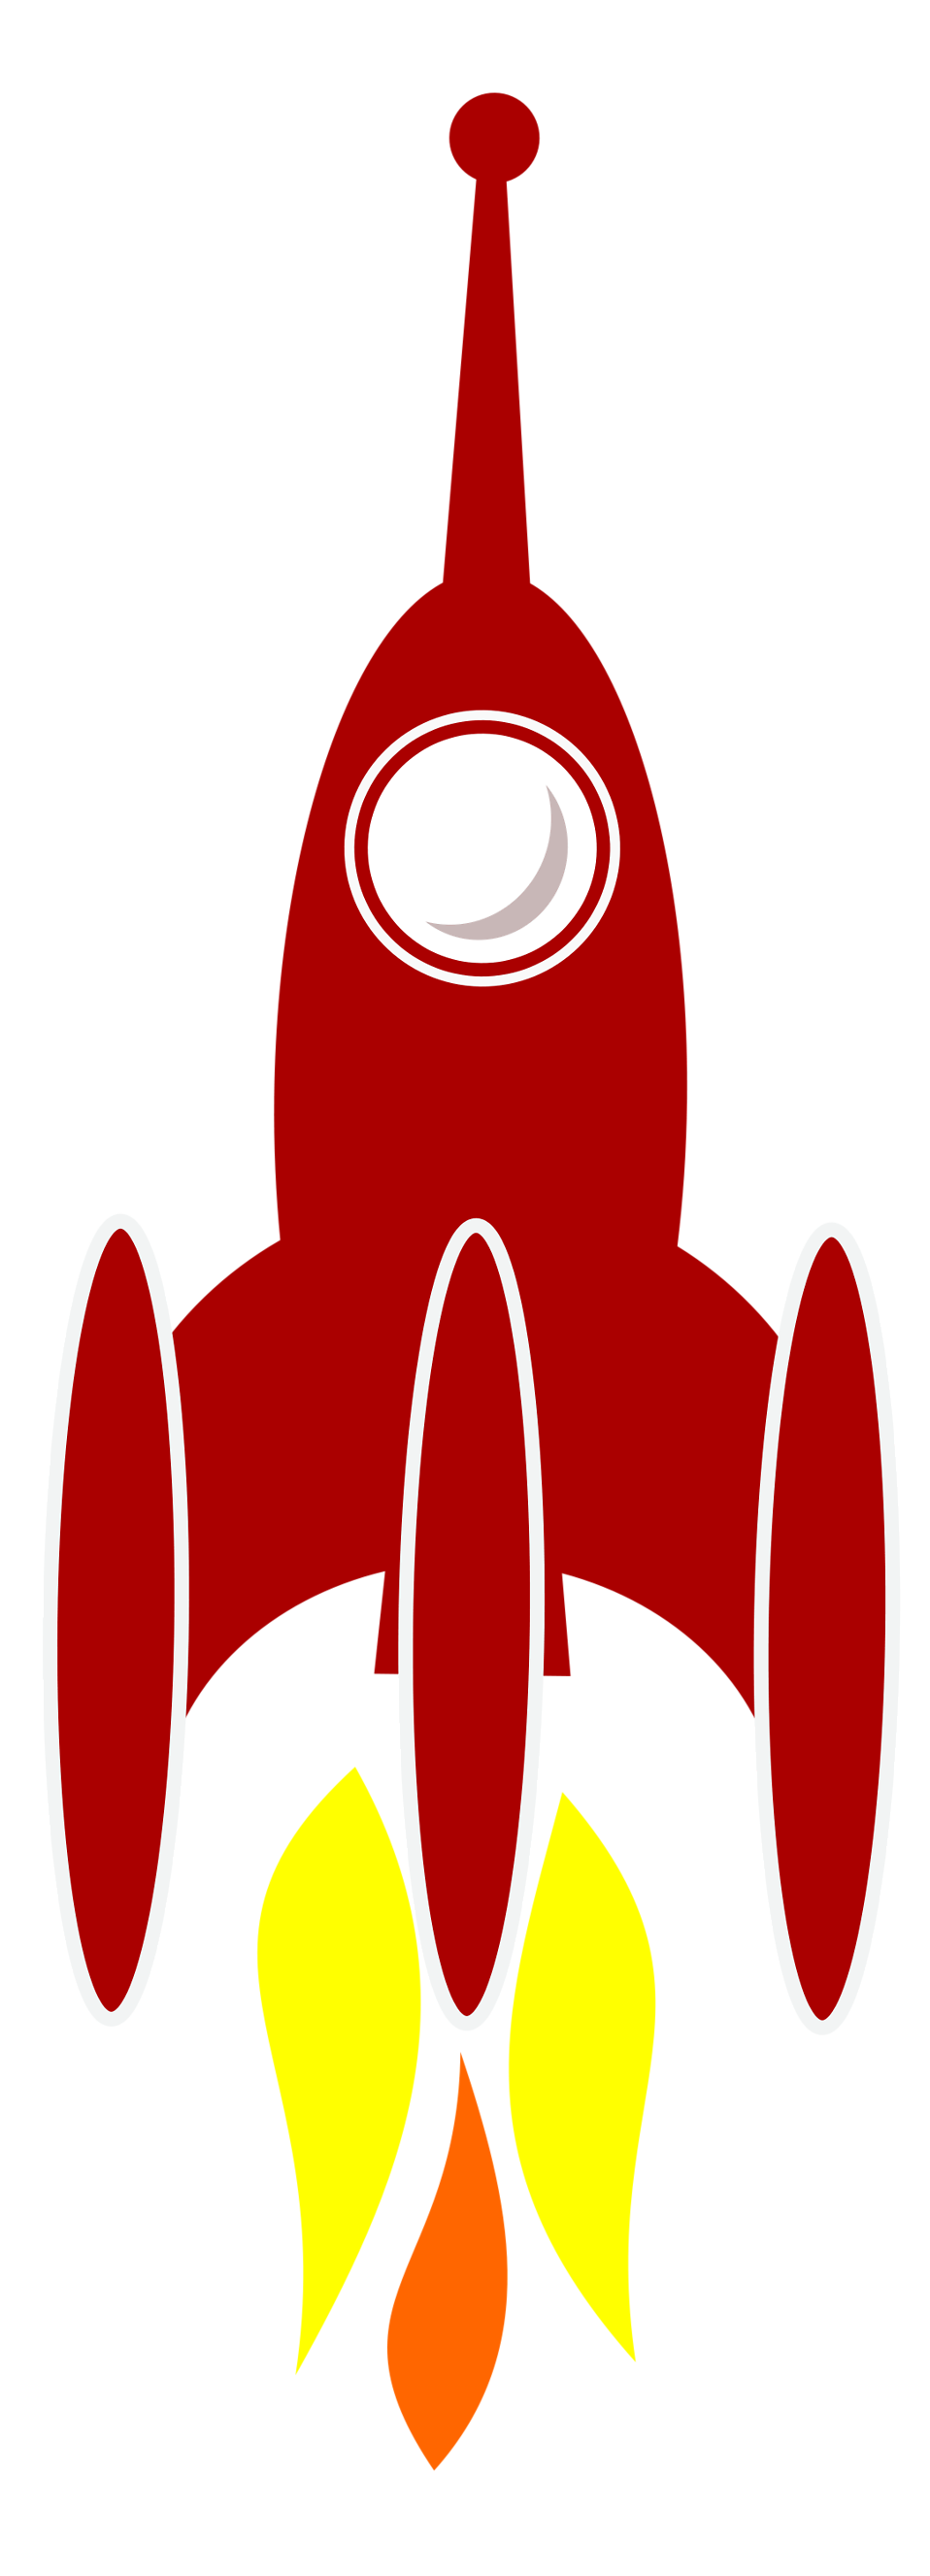 Illustration of a red rocket with a transparent background.